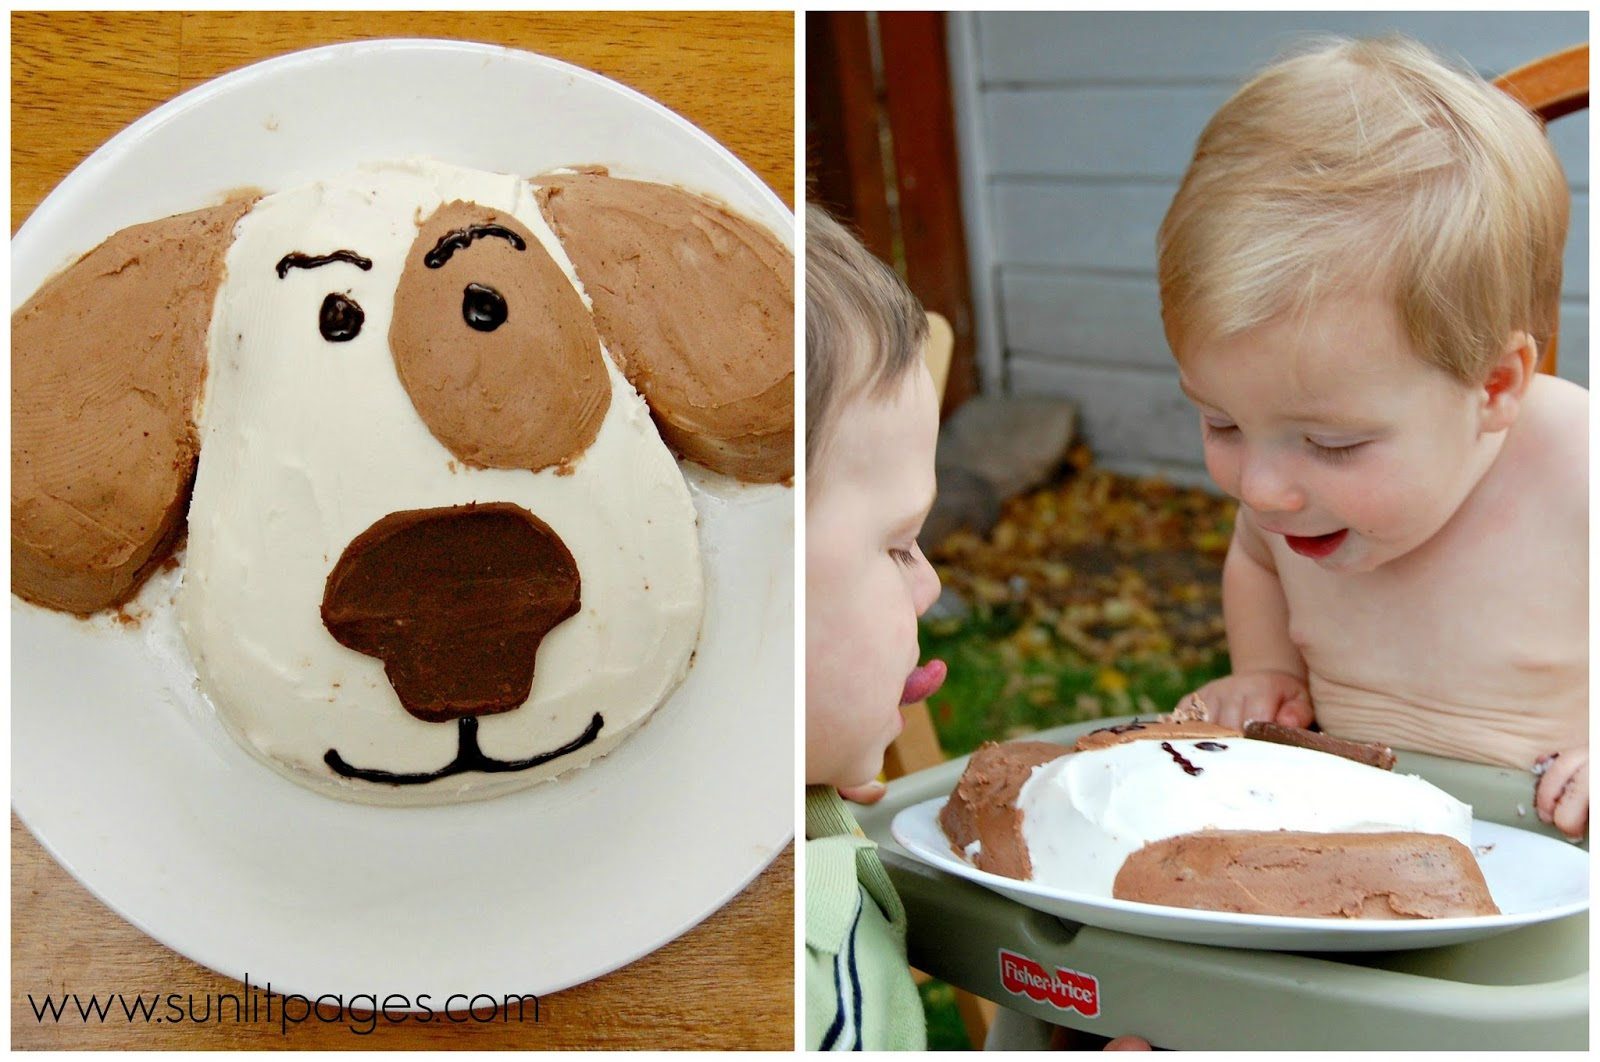 Sunlit Pages 15 Awesome Birthday Cakes For Kids